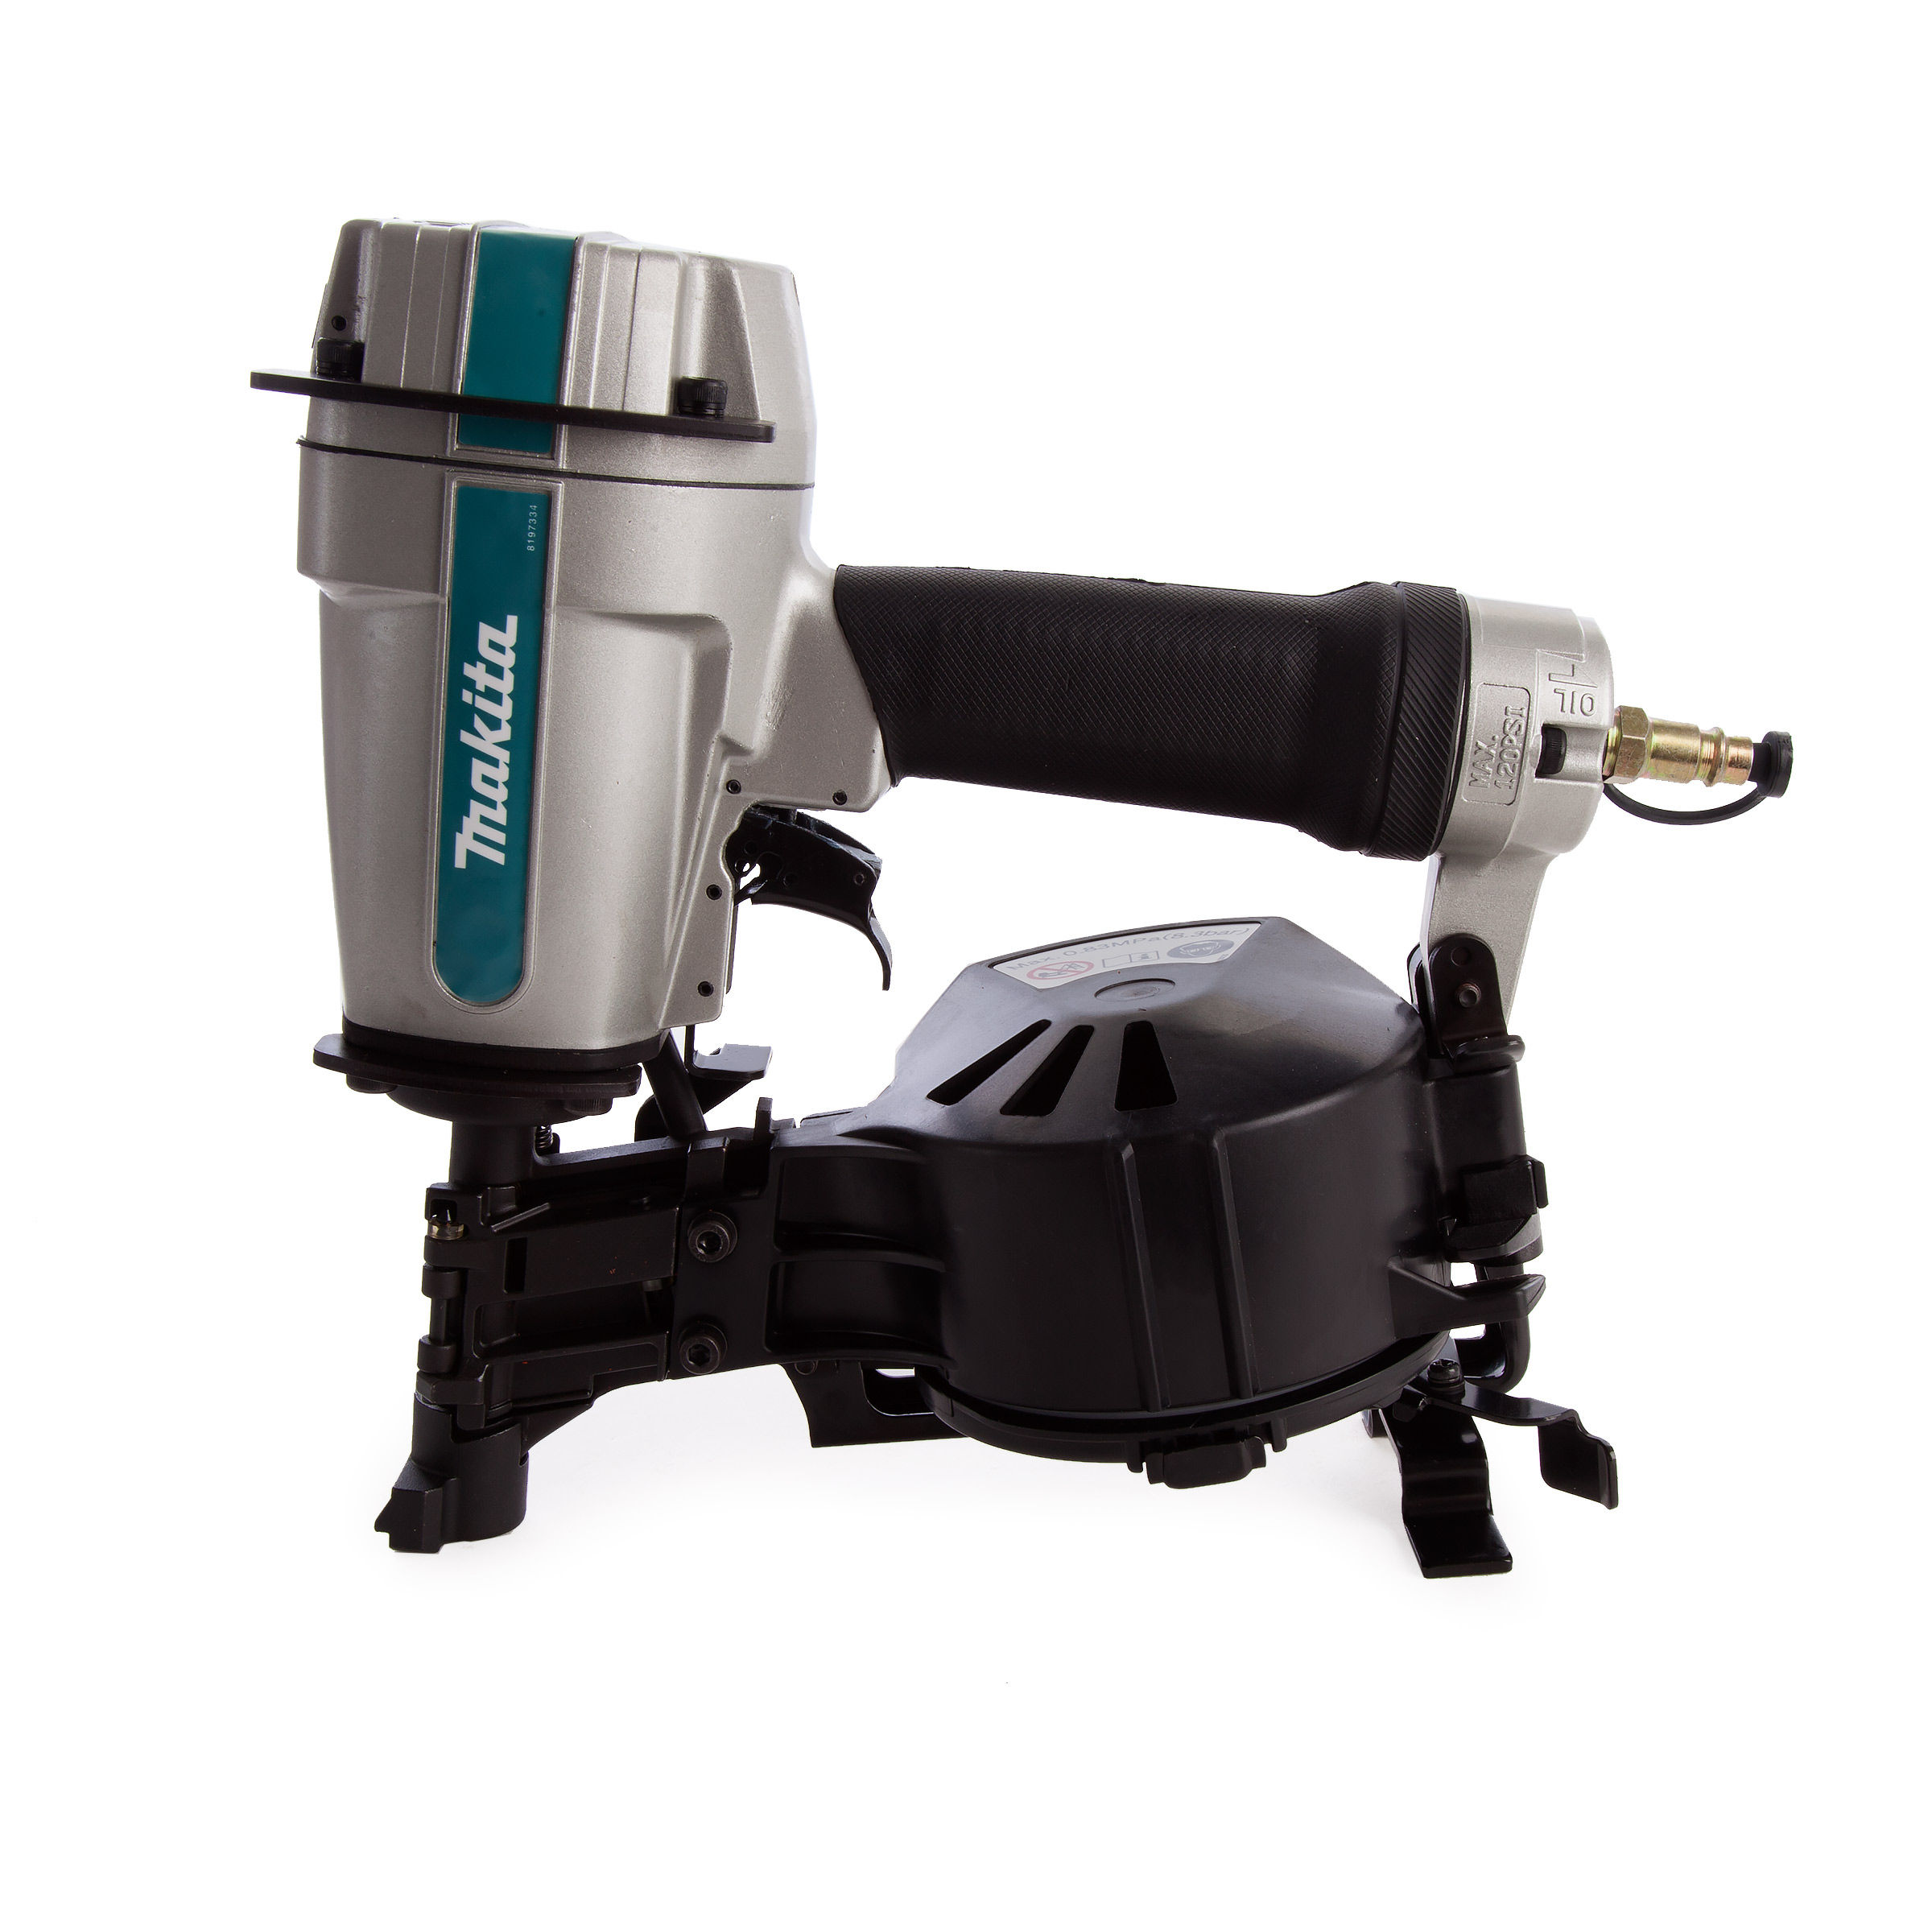 Toolstop Makita An451 Roofing Coil Nailer 25mm 45mm